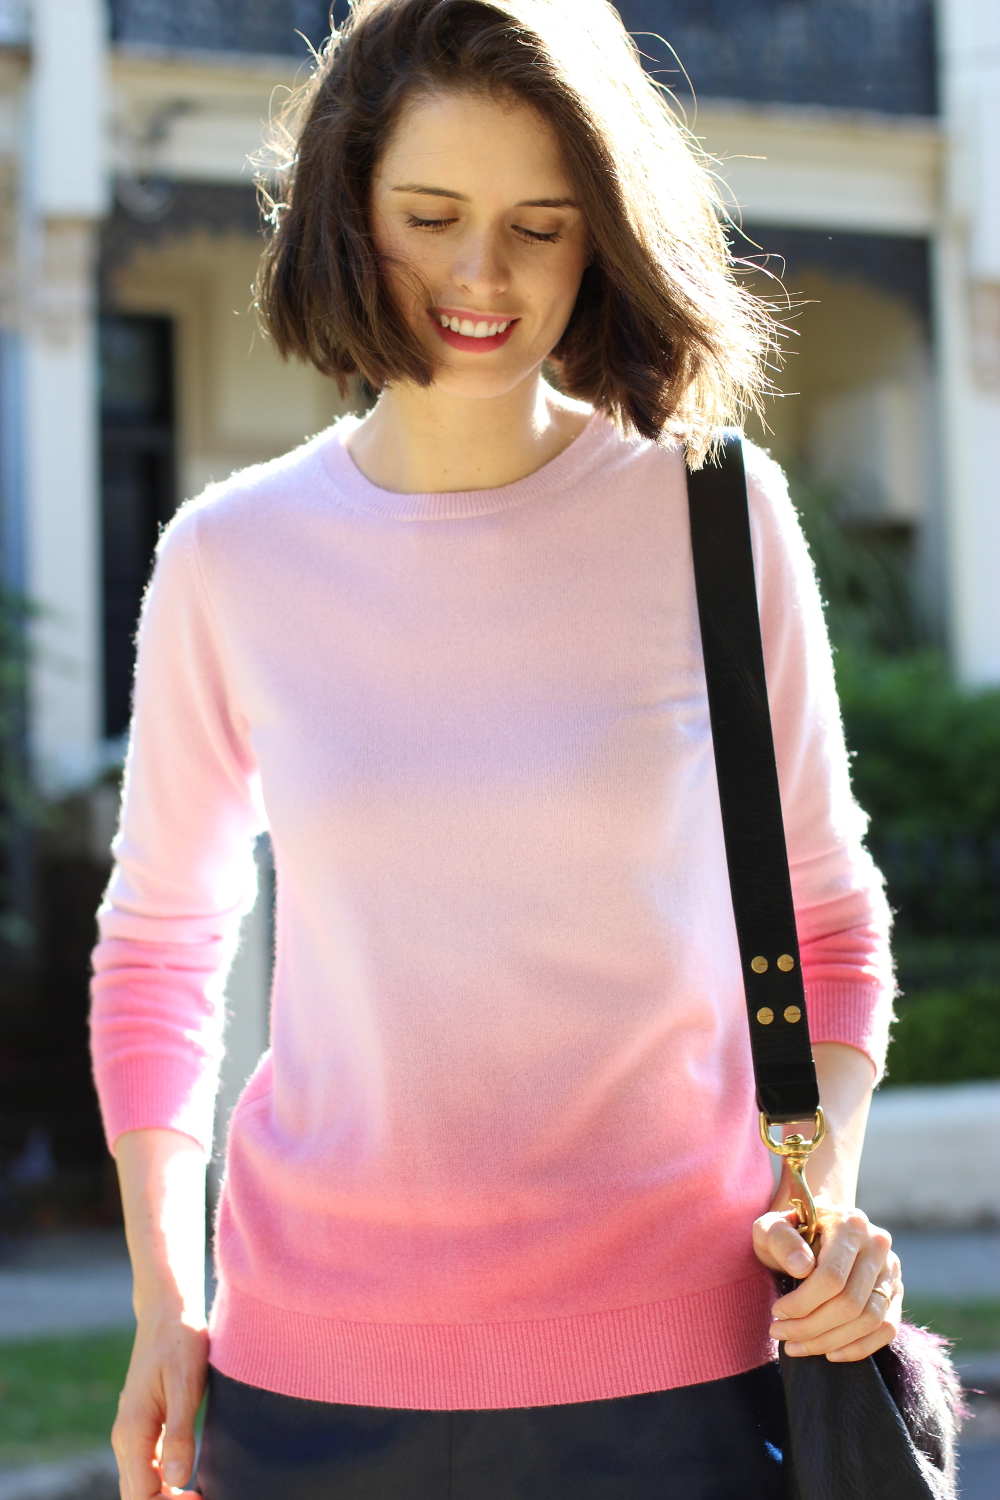 BY CHILL BLOG Boden UK pink ombre cashmere jumper, antipodium london navy mini skirt and miu miu blue heels